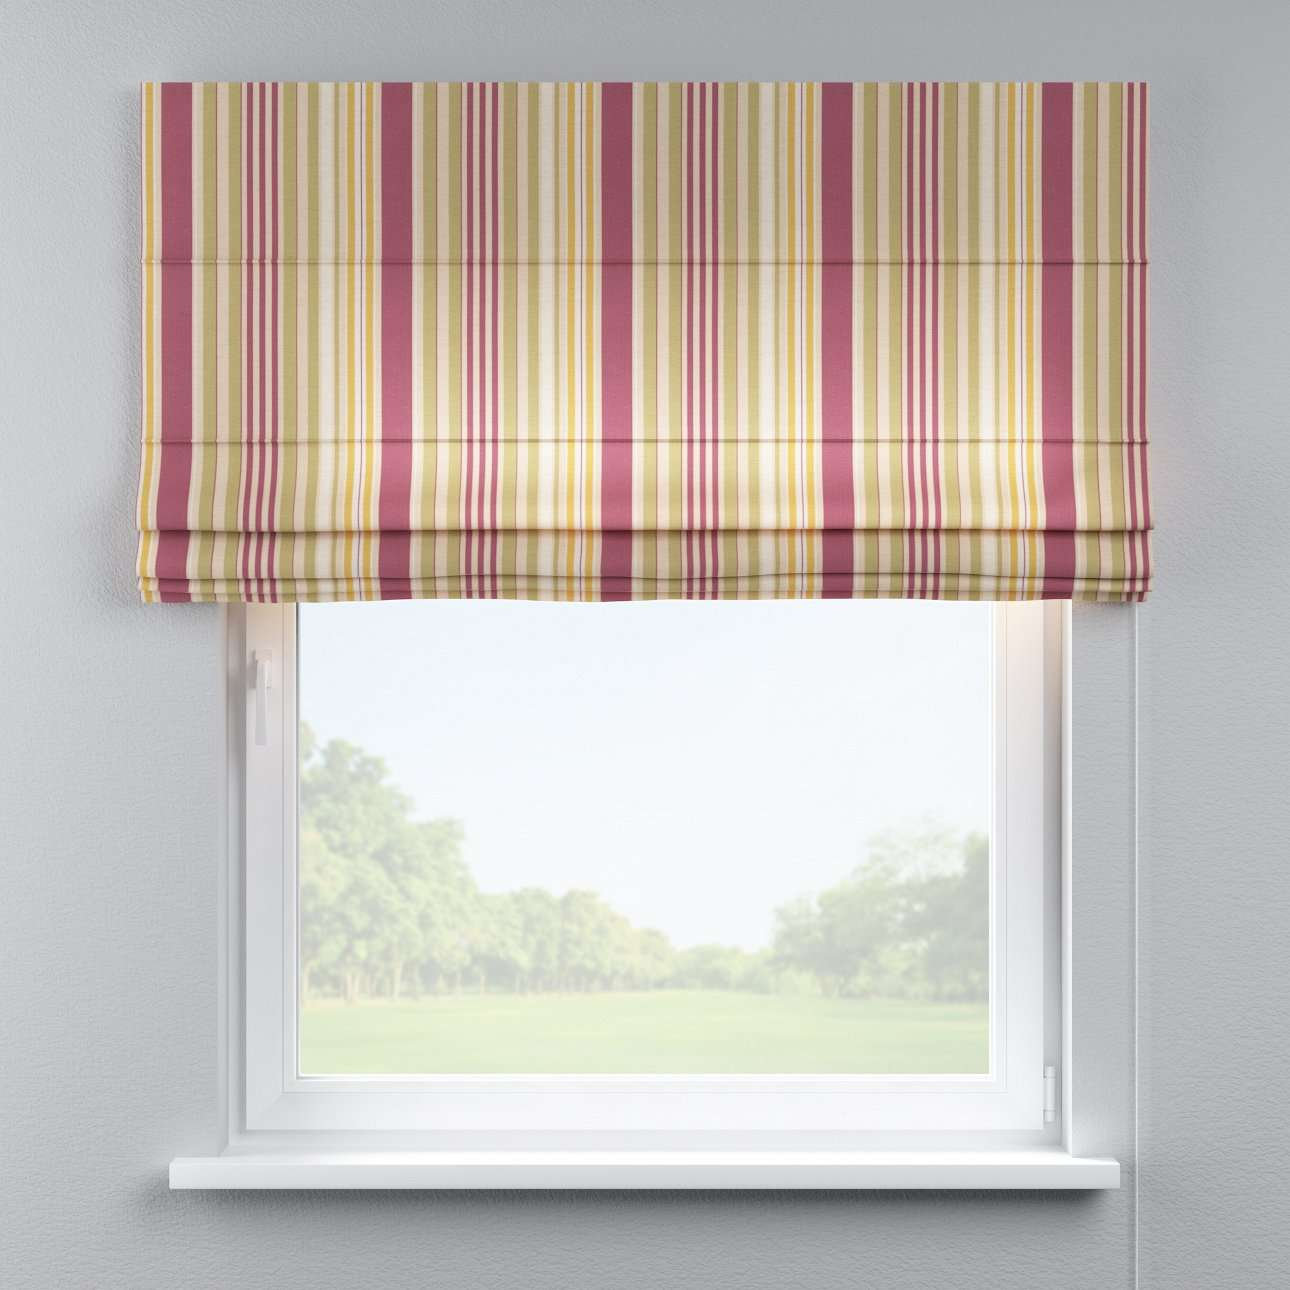 Capri roman blind 80 x 170 cm (31.5 x 67 inch) in collection Londres, fabric: 122-09